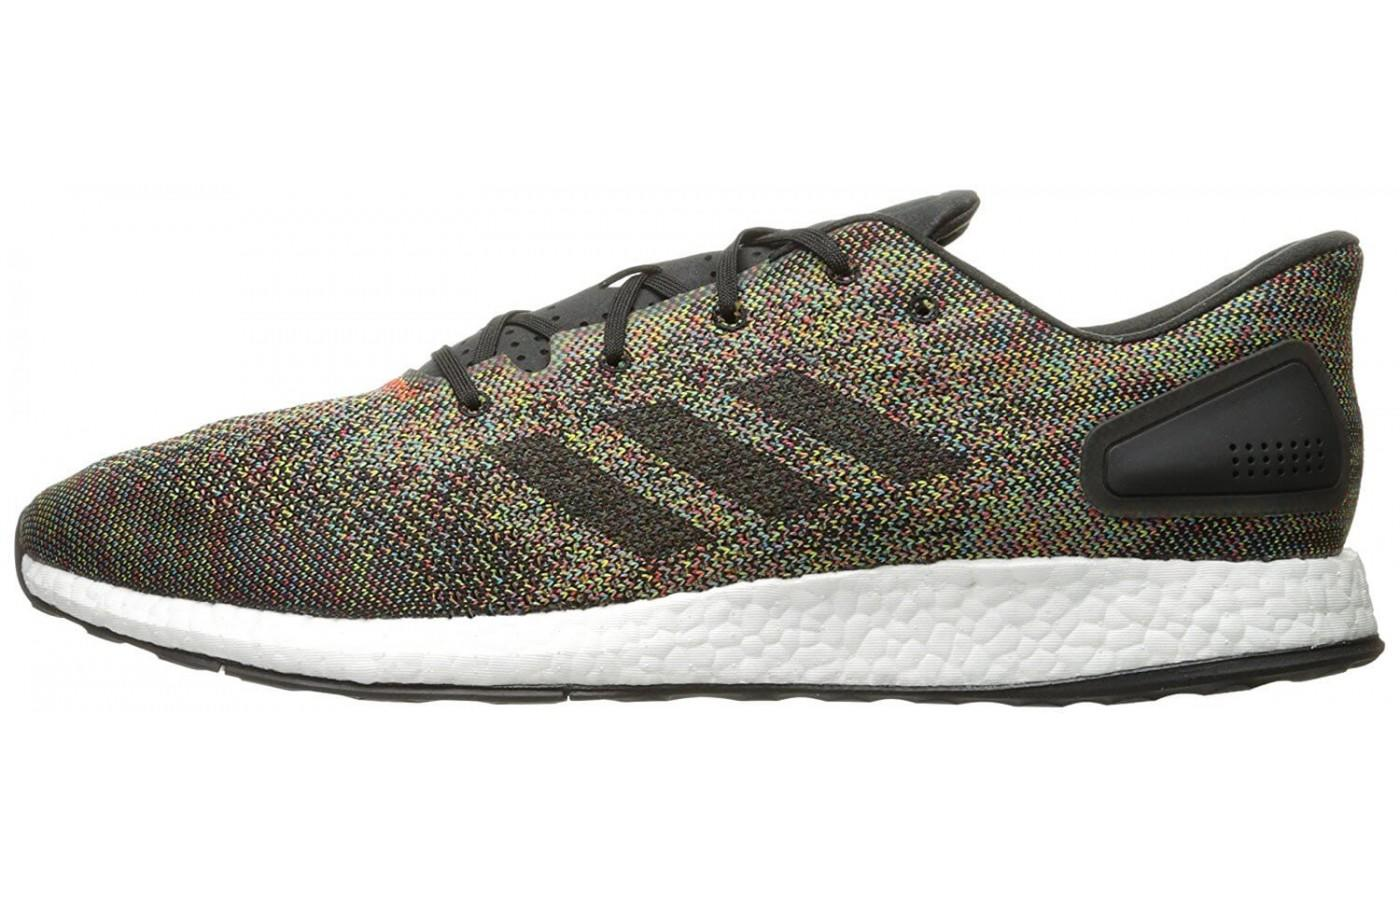 Adidas PureBOOST DPR LTD has unique color designs